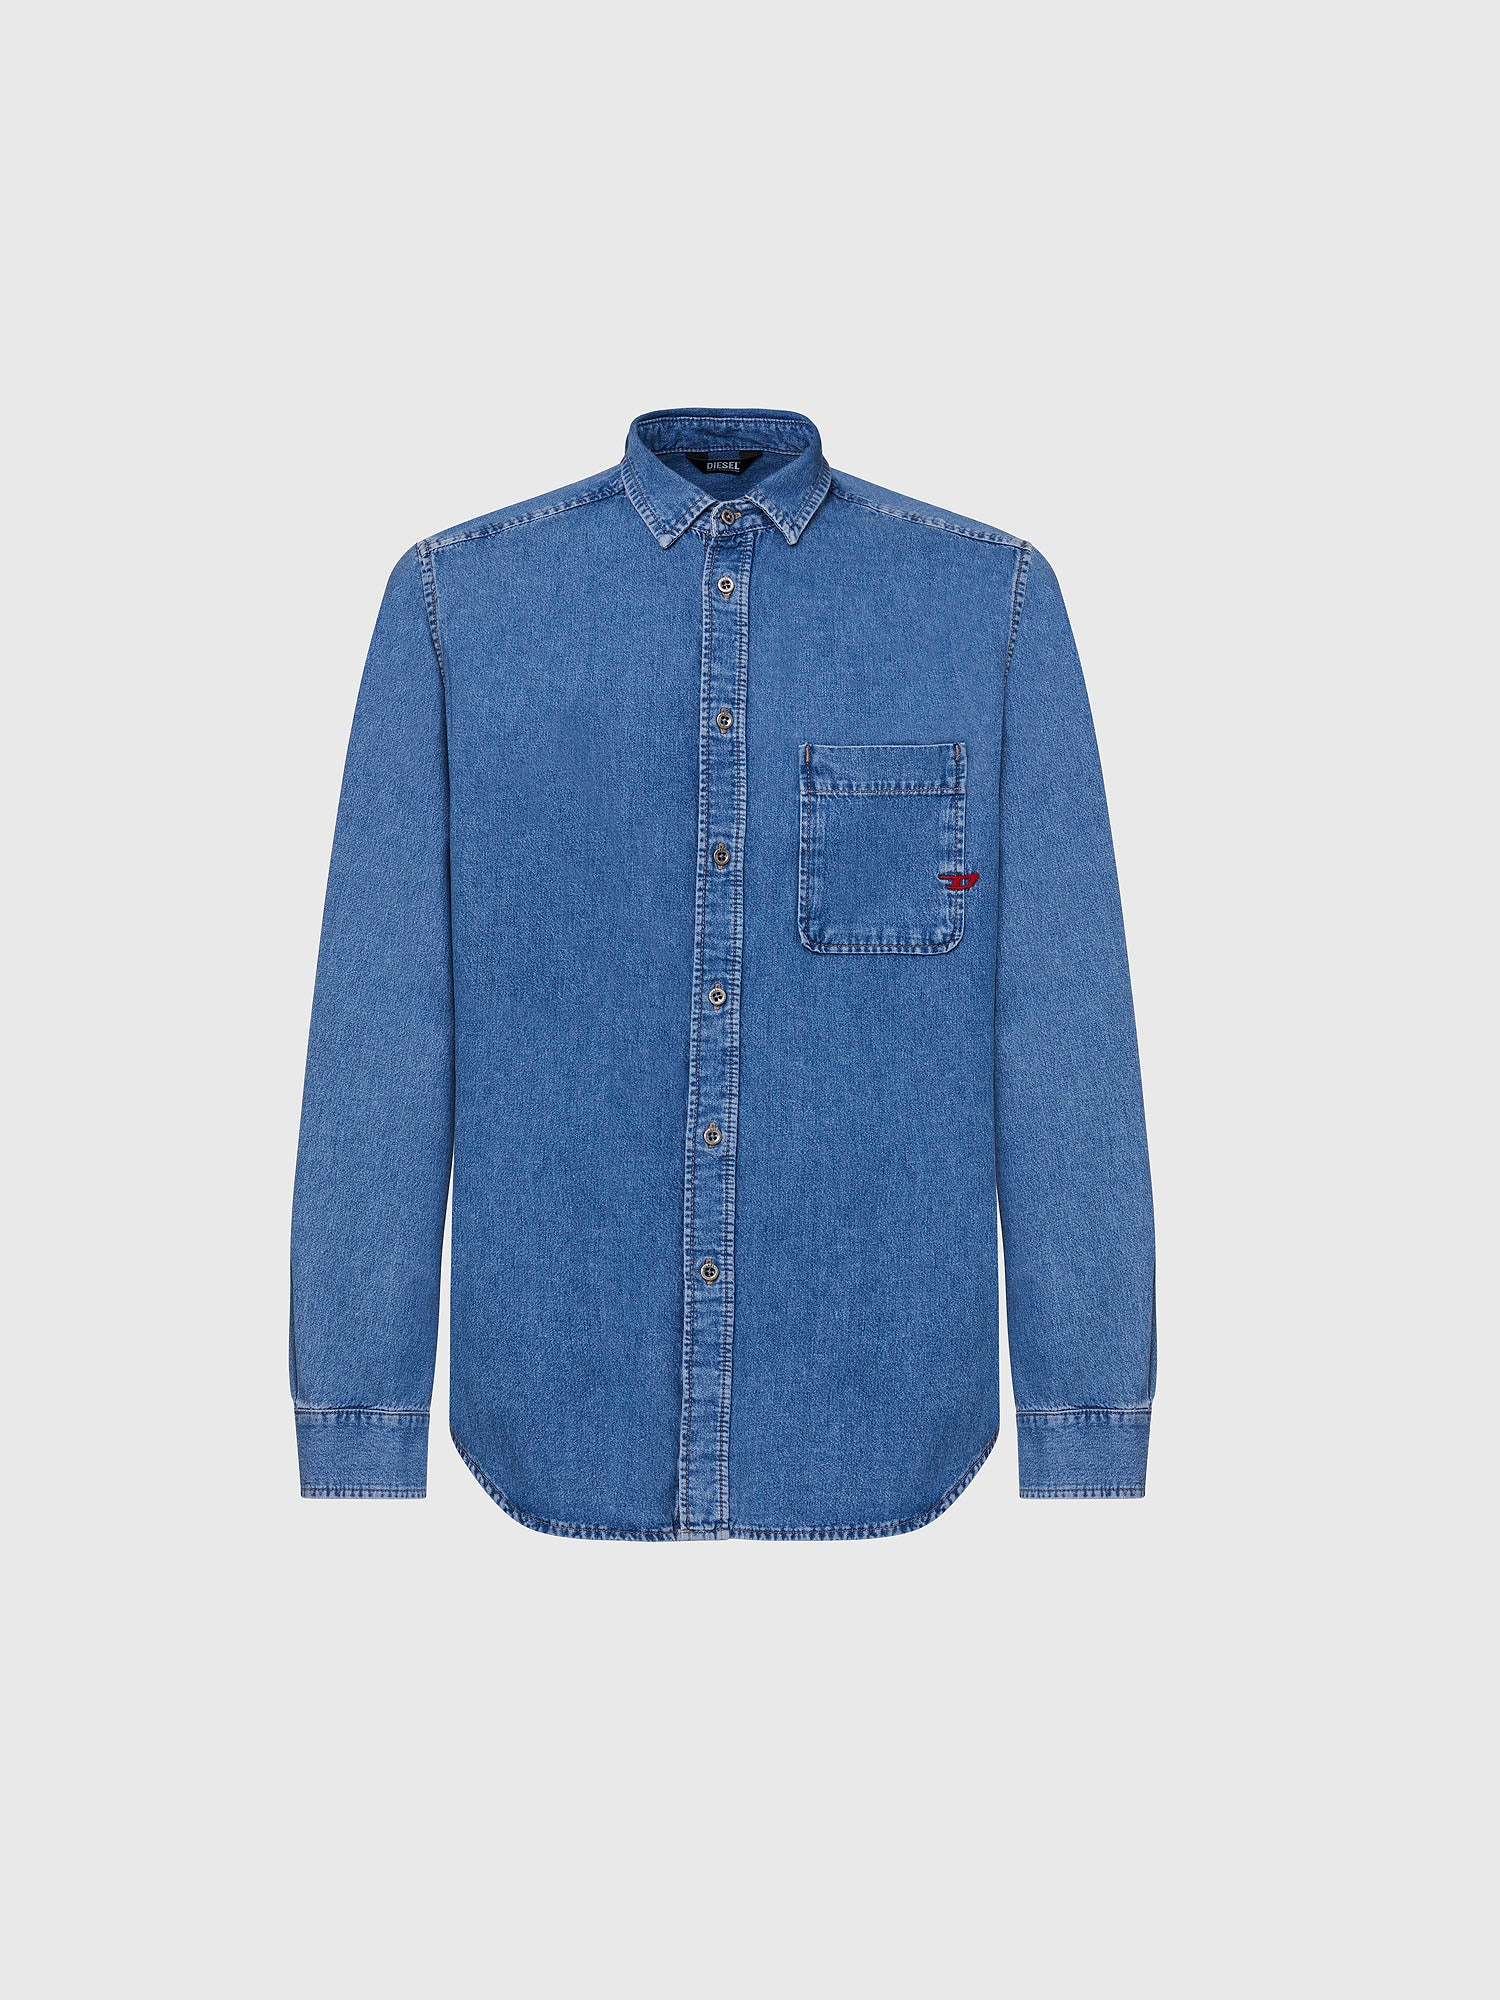 D-BILLY CAMICIA - Denim - Diesel